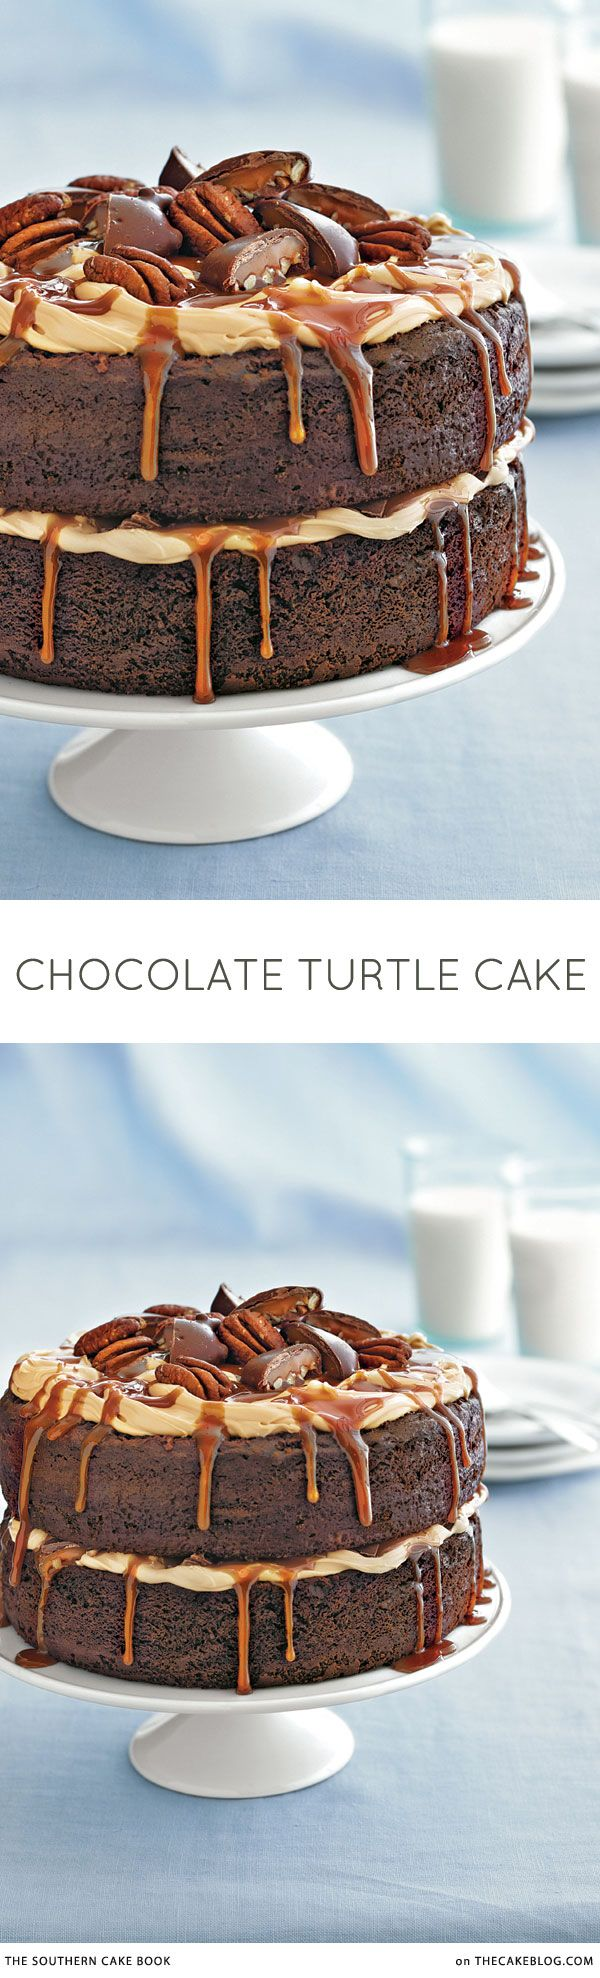 chocolate, caramel and pecans   Chocolate Turtle Cake Recipe   from The Southern Cake Book by Southern Living on TheCakeBlog.com